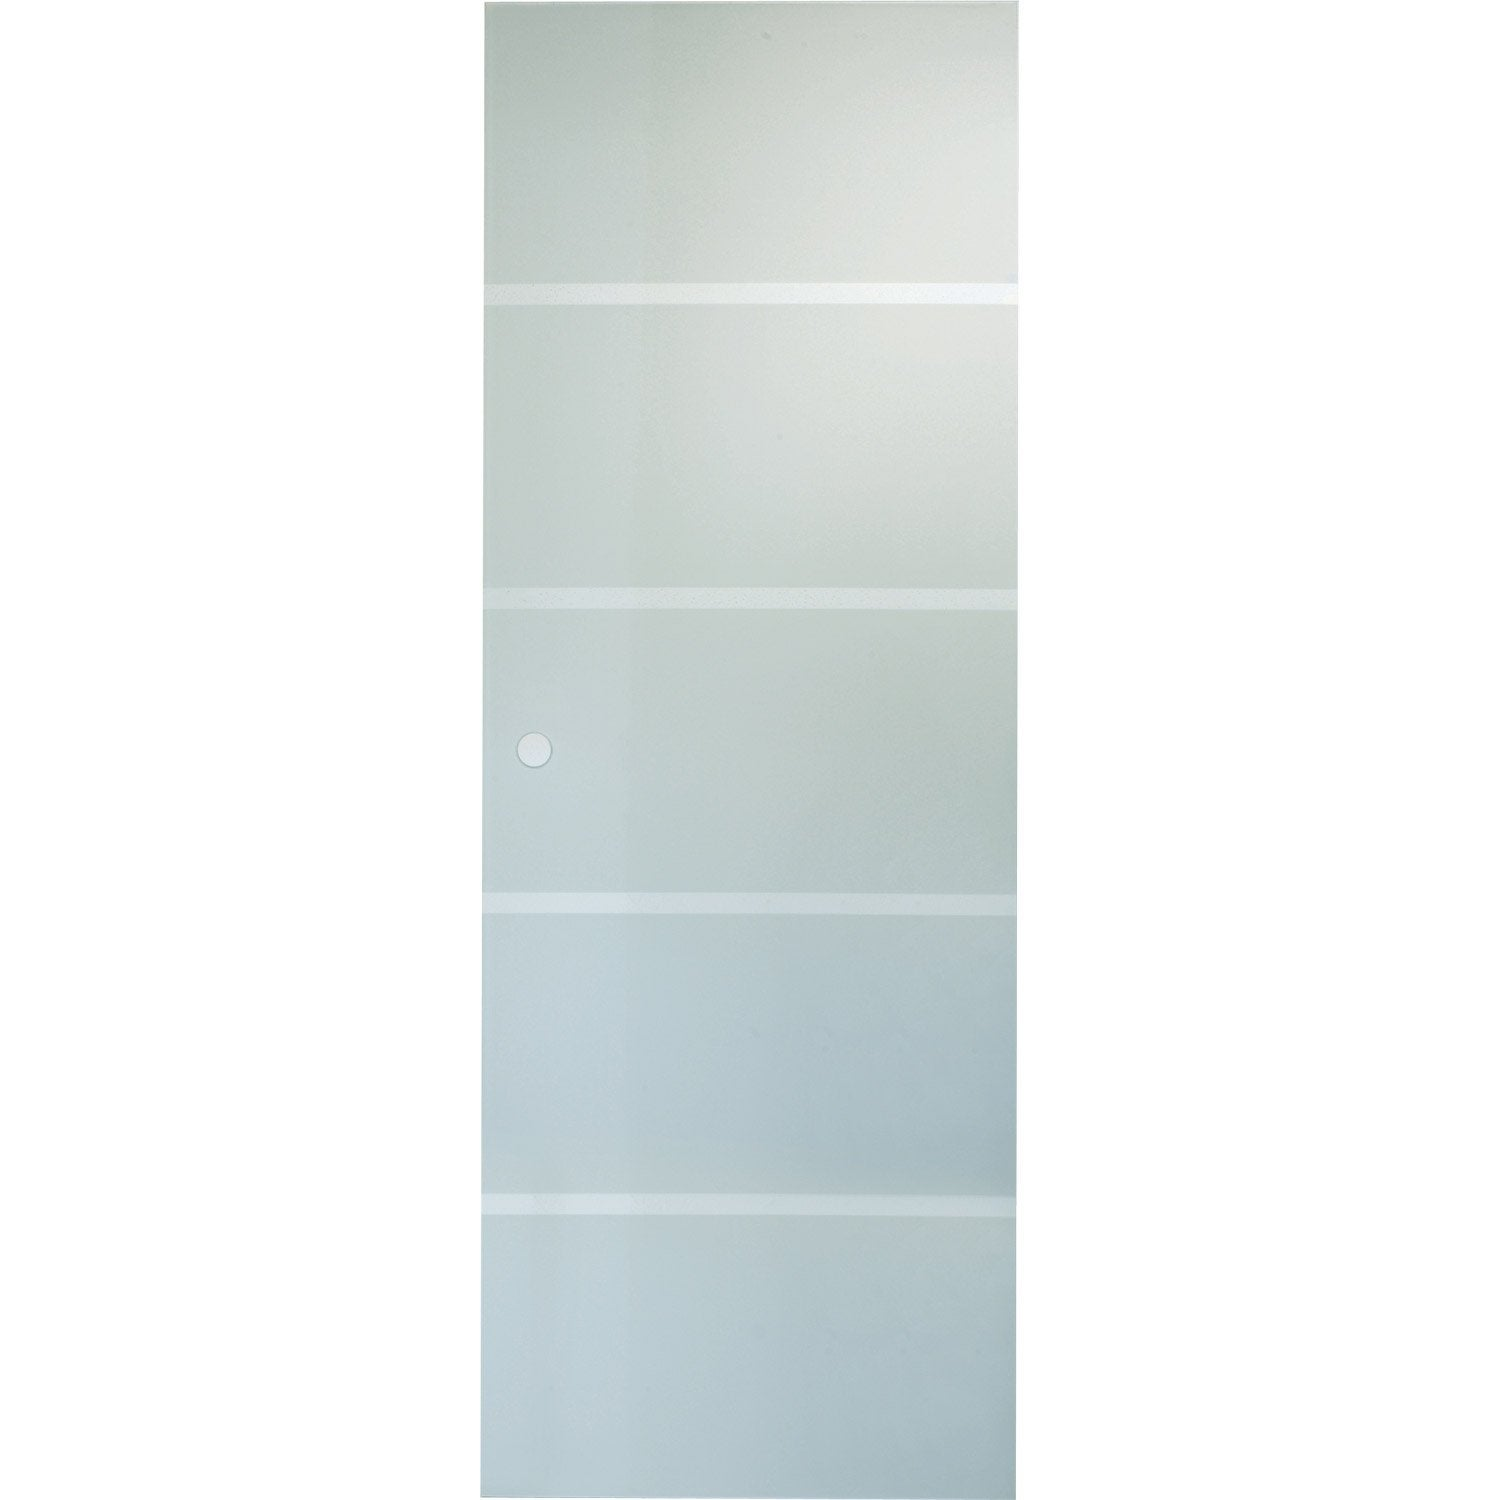 Porte coulissante verre tremp miami artens 204 x 83 cm for Porte interieure en 63 cm